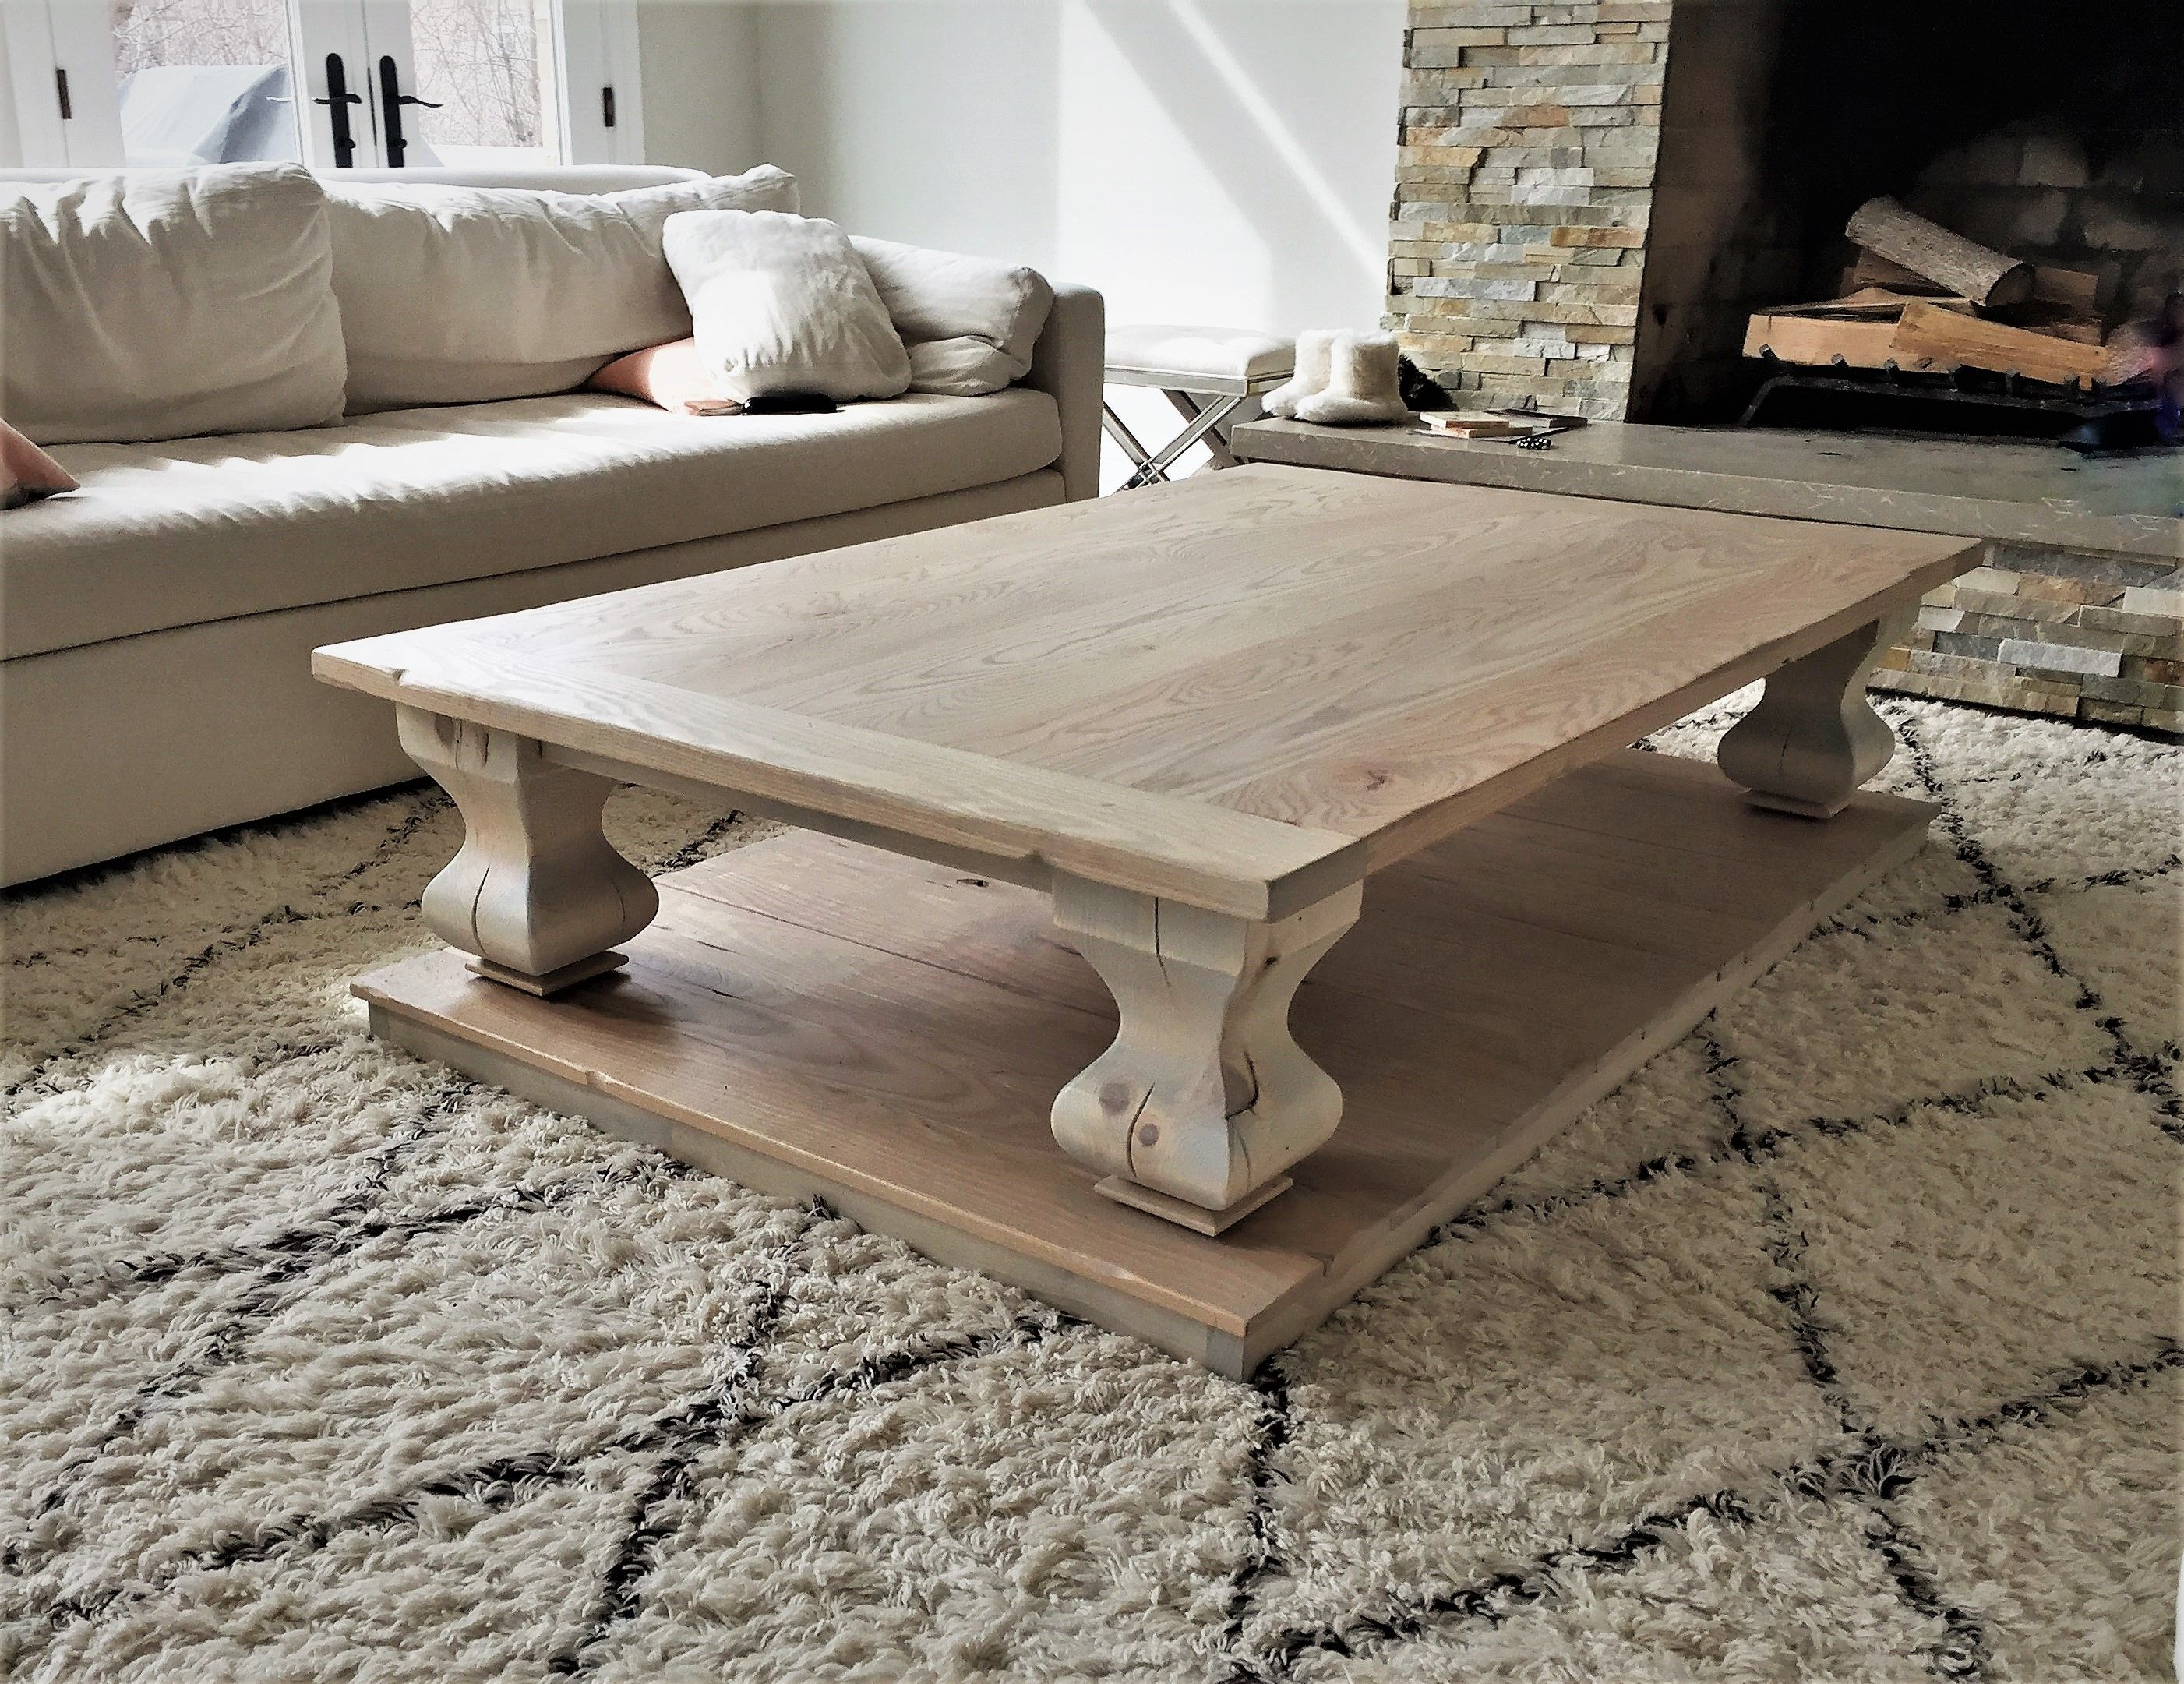 Whitewash Coffee Table With Belly Pedestal And Breadboards Coffee Table Rustic Square Coffee Table Furniture [ 2161 x 2803 Pixel ]